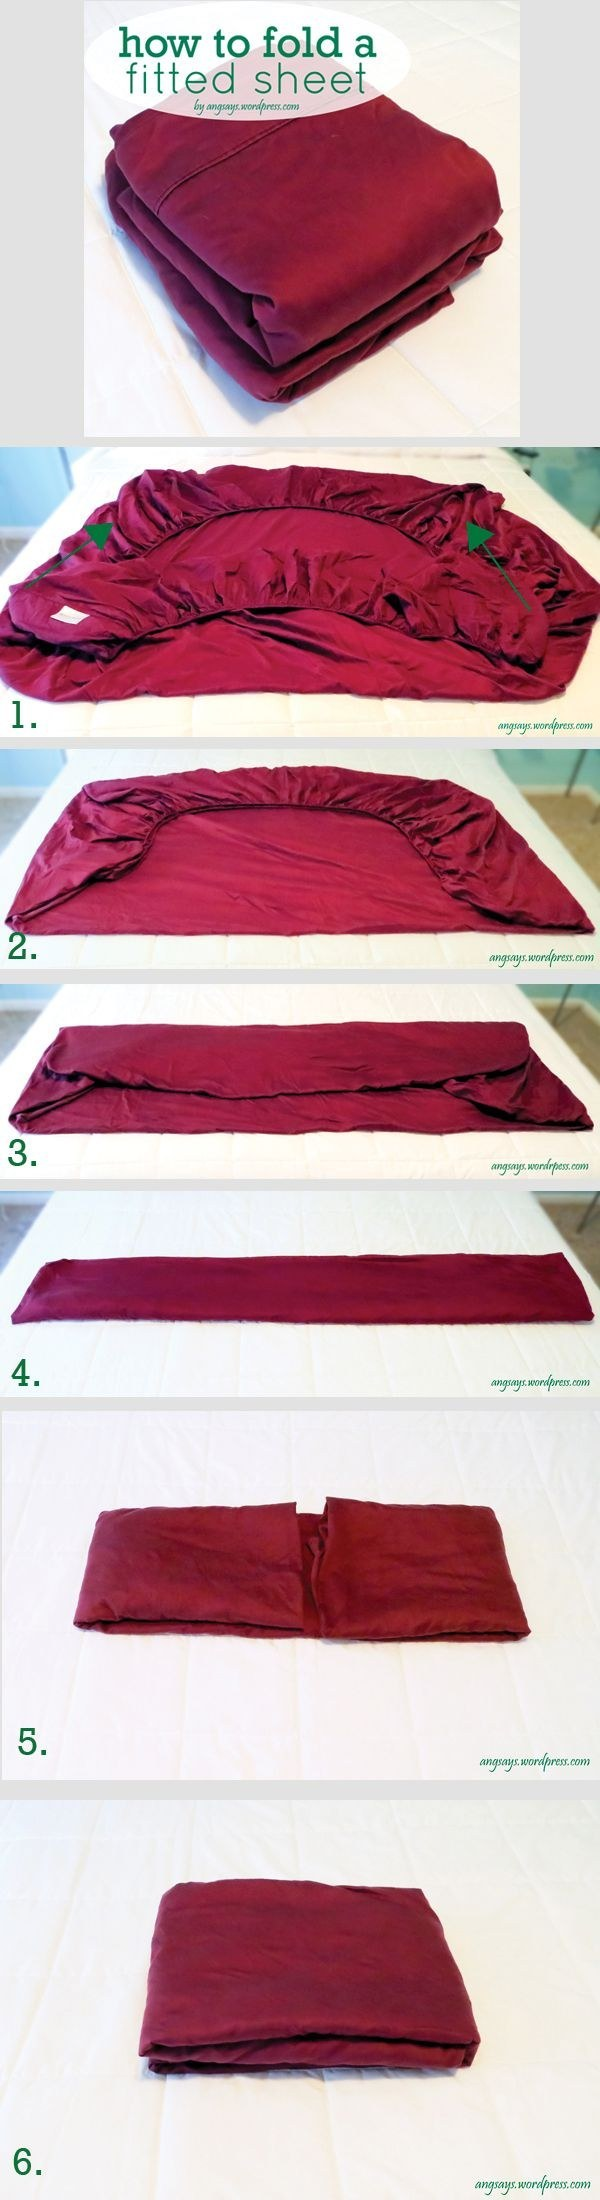 17 Clever and Useful Tips To Properly Fold Your Things And Save Space